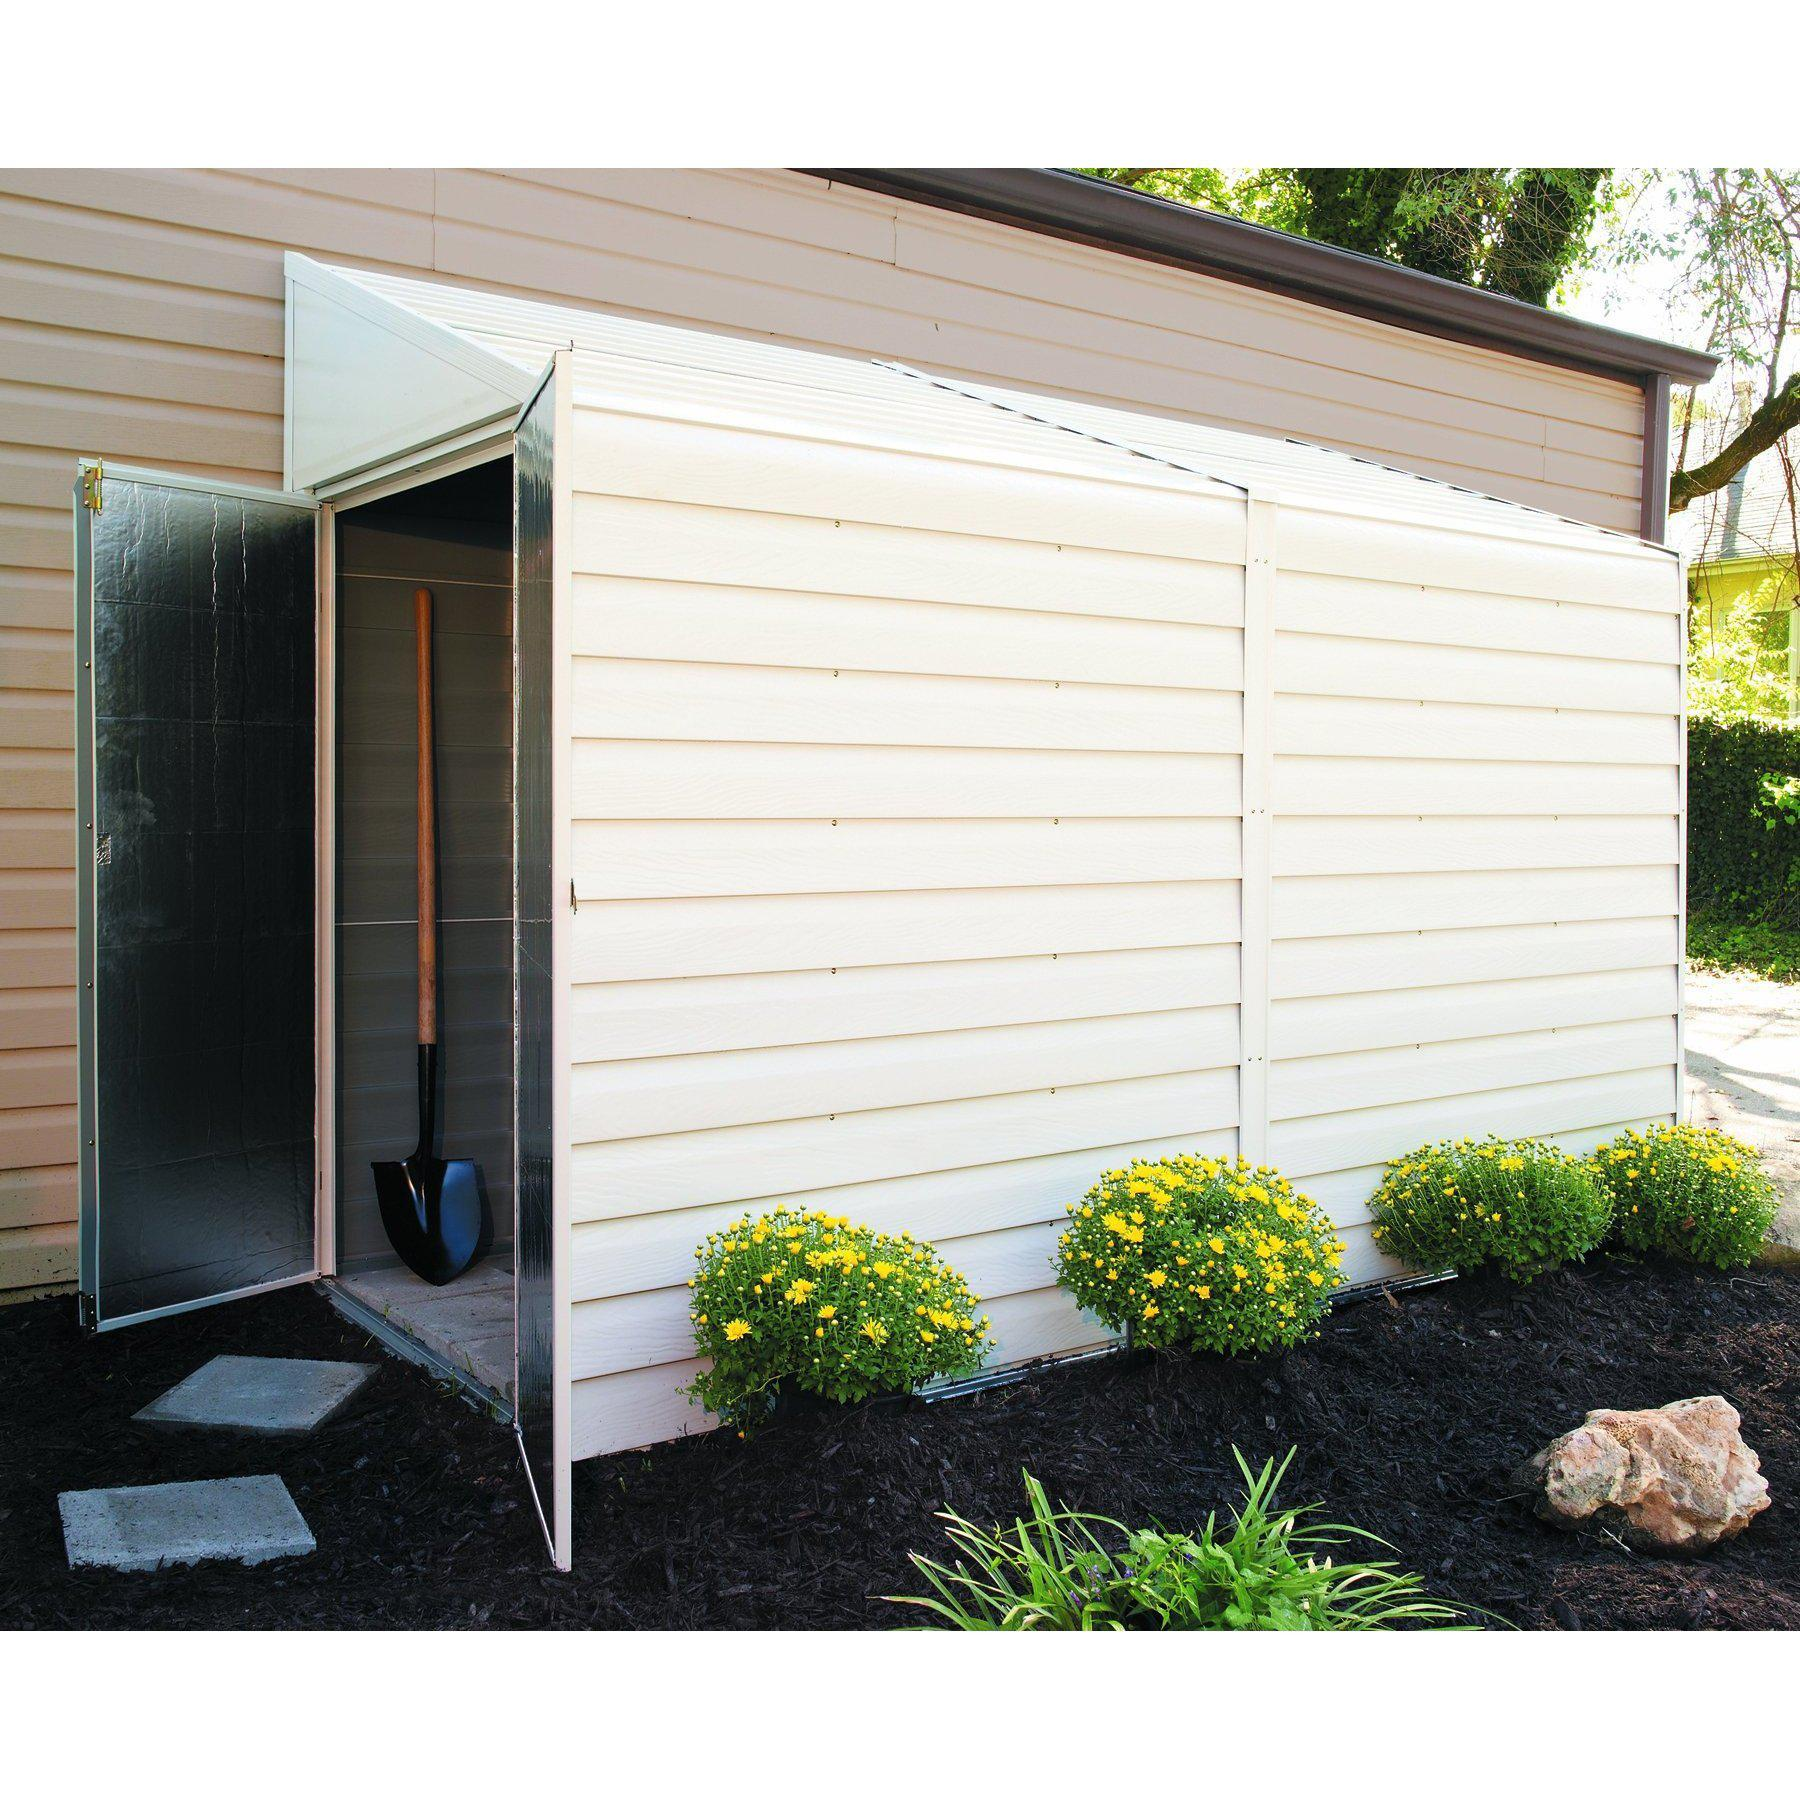 Arrow Yardsaver Pent Roof Steel Storage Shed, Eggshell, 4 x 10 ft.